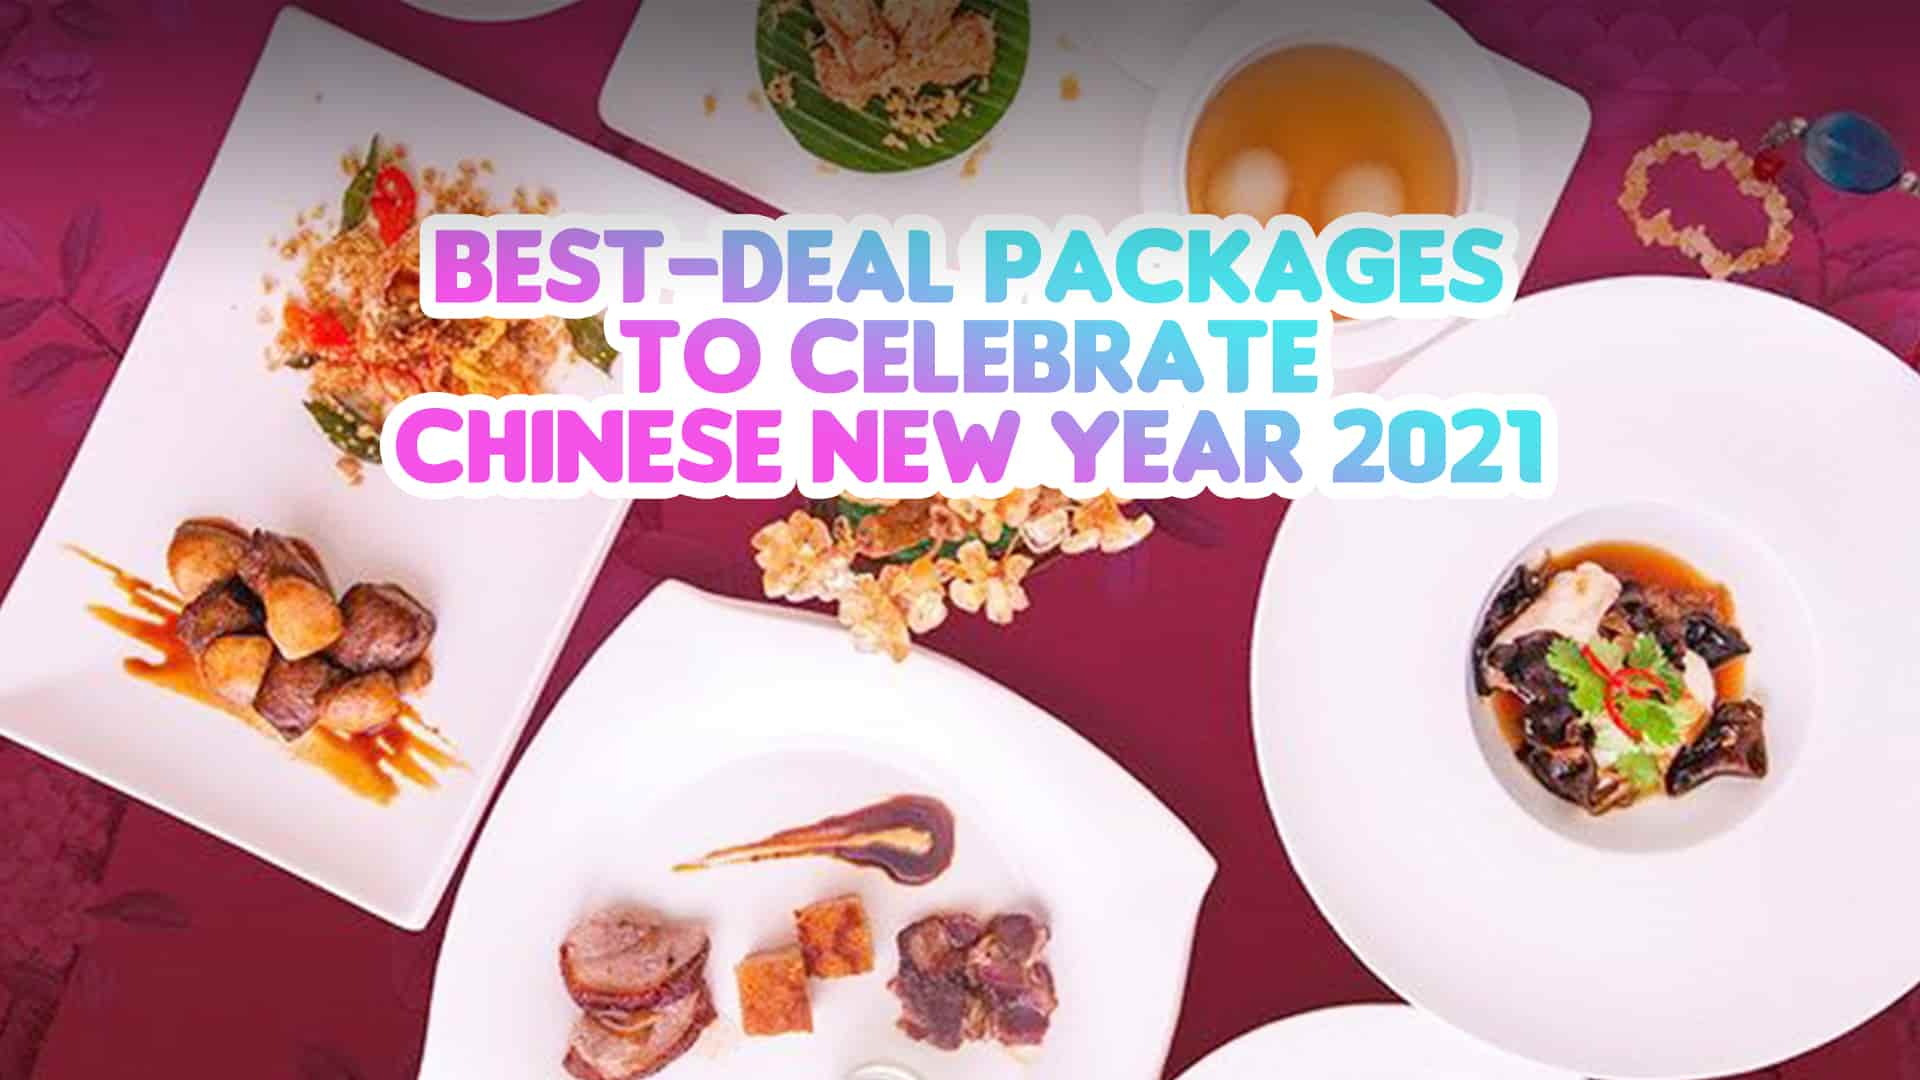 chinese new year package in bali 2021